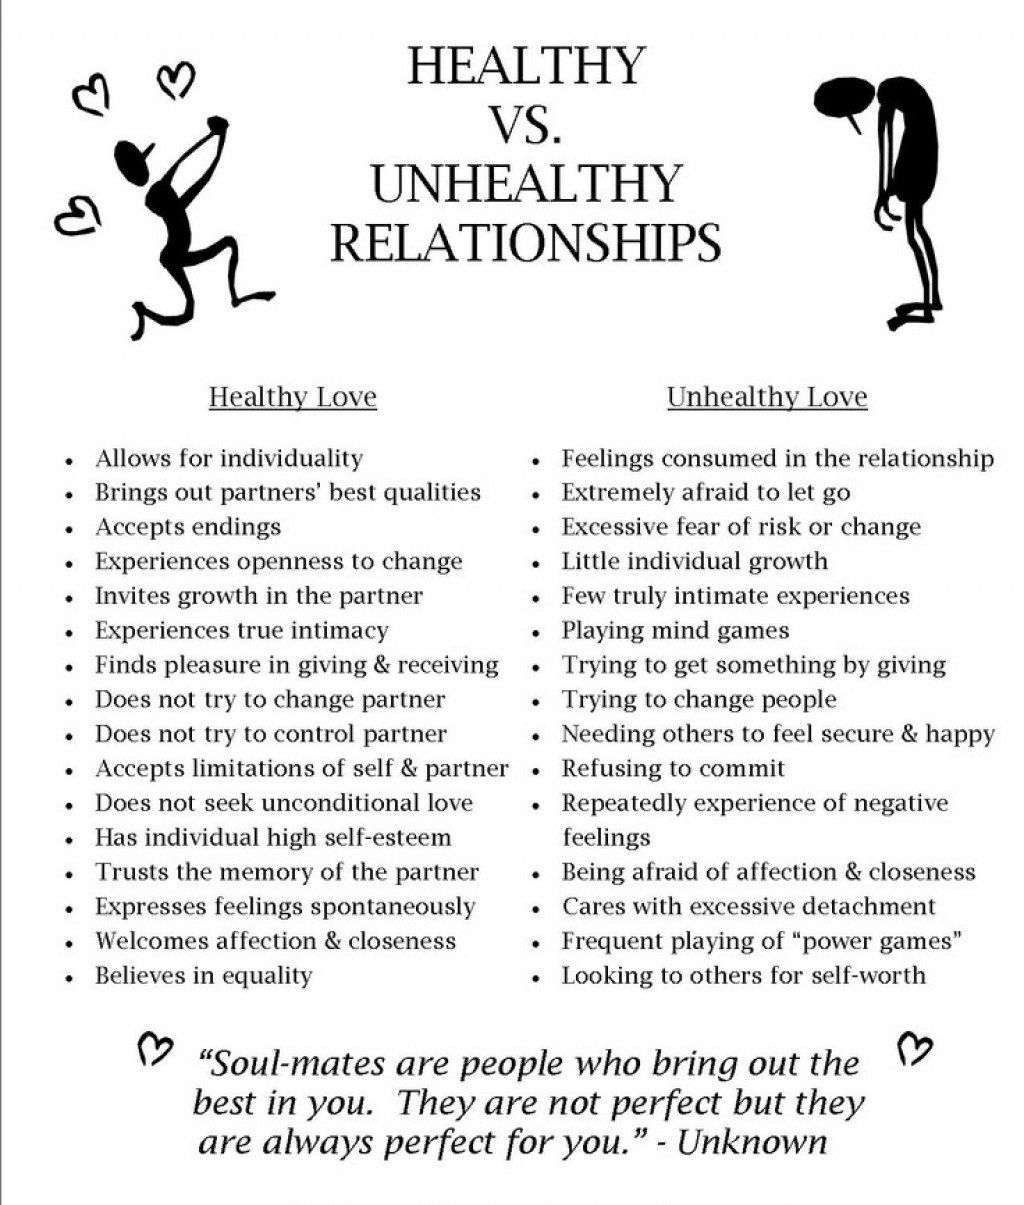 Relationships With Adorable Truths Healthy Relationships